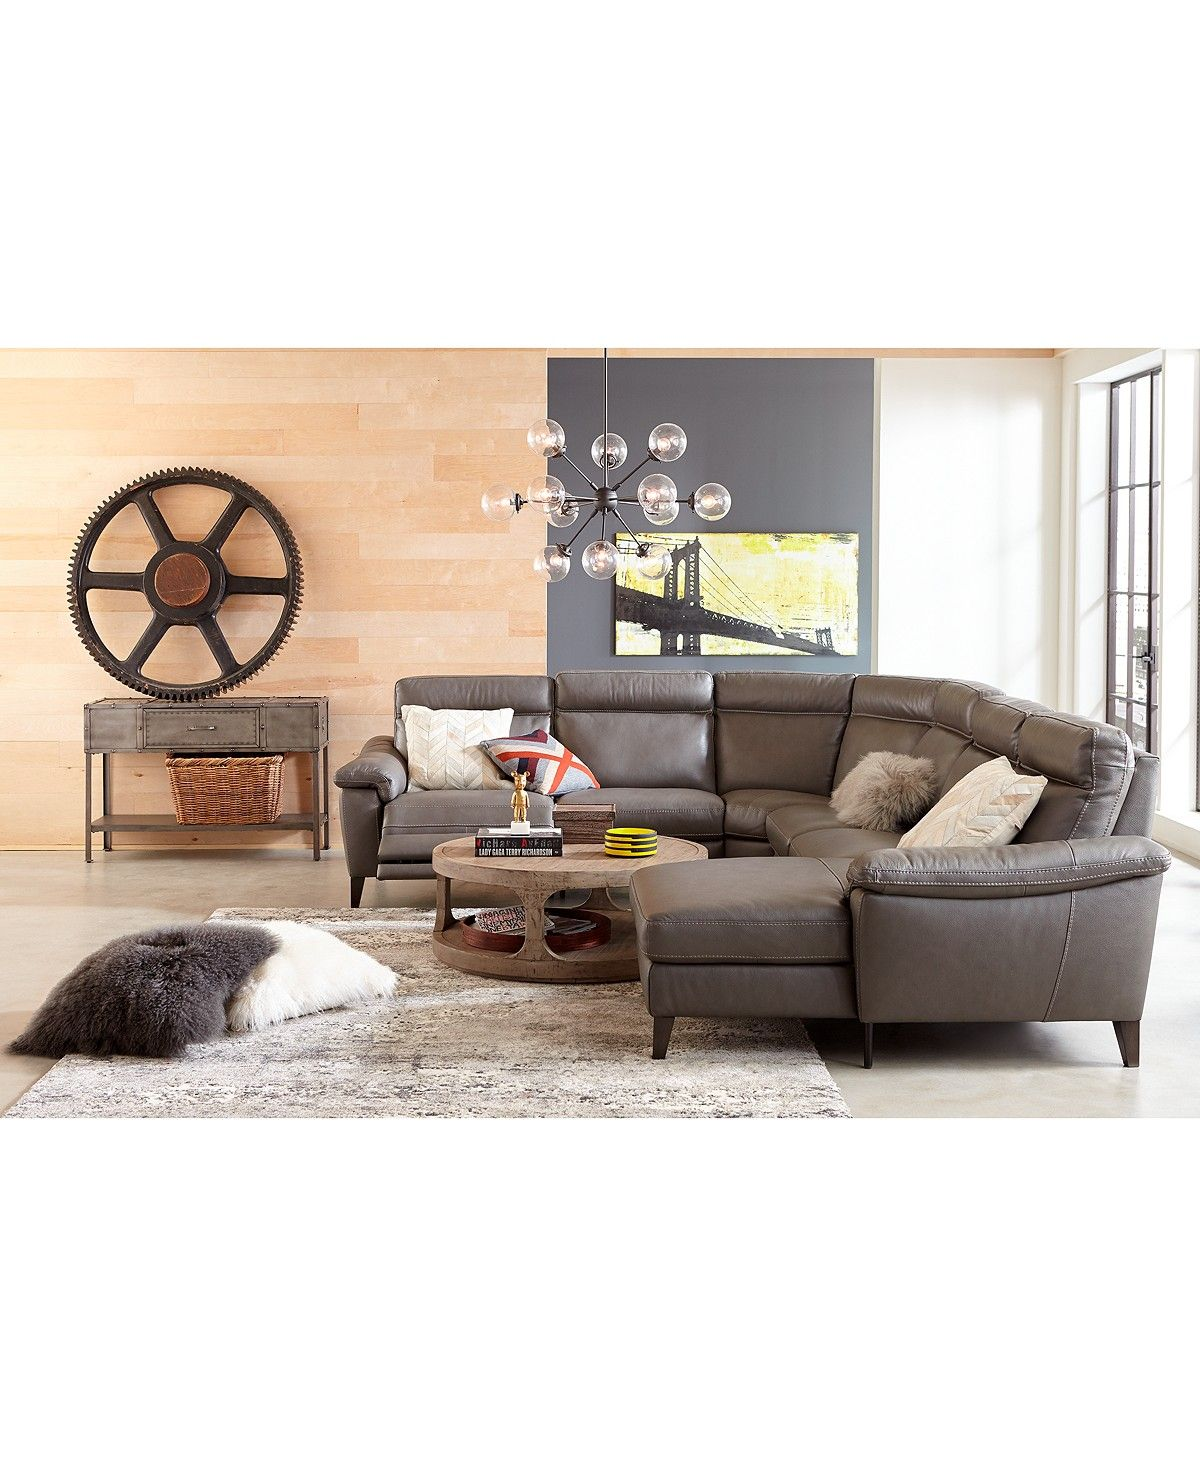 Pirello ii 5 pc l shaped leather sectional sofa with 3 power recliners with power headrests and usb port created for macys furniture macys